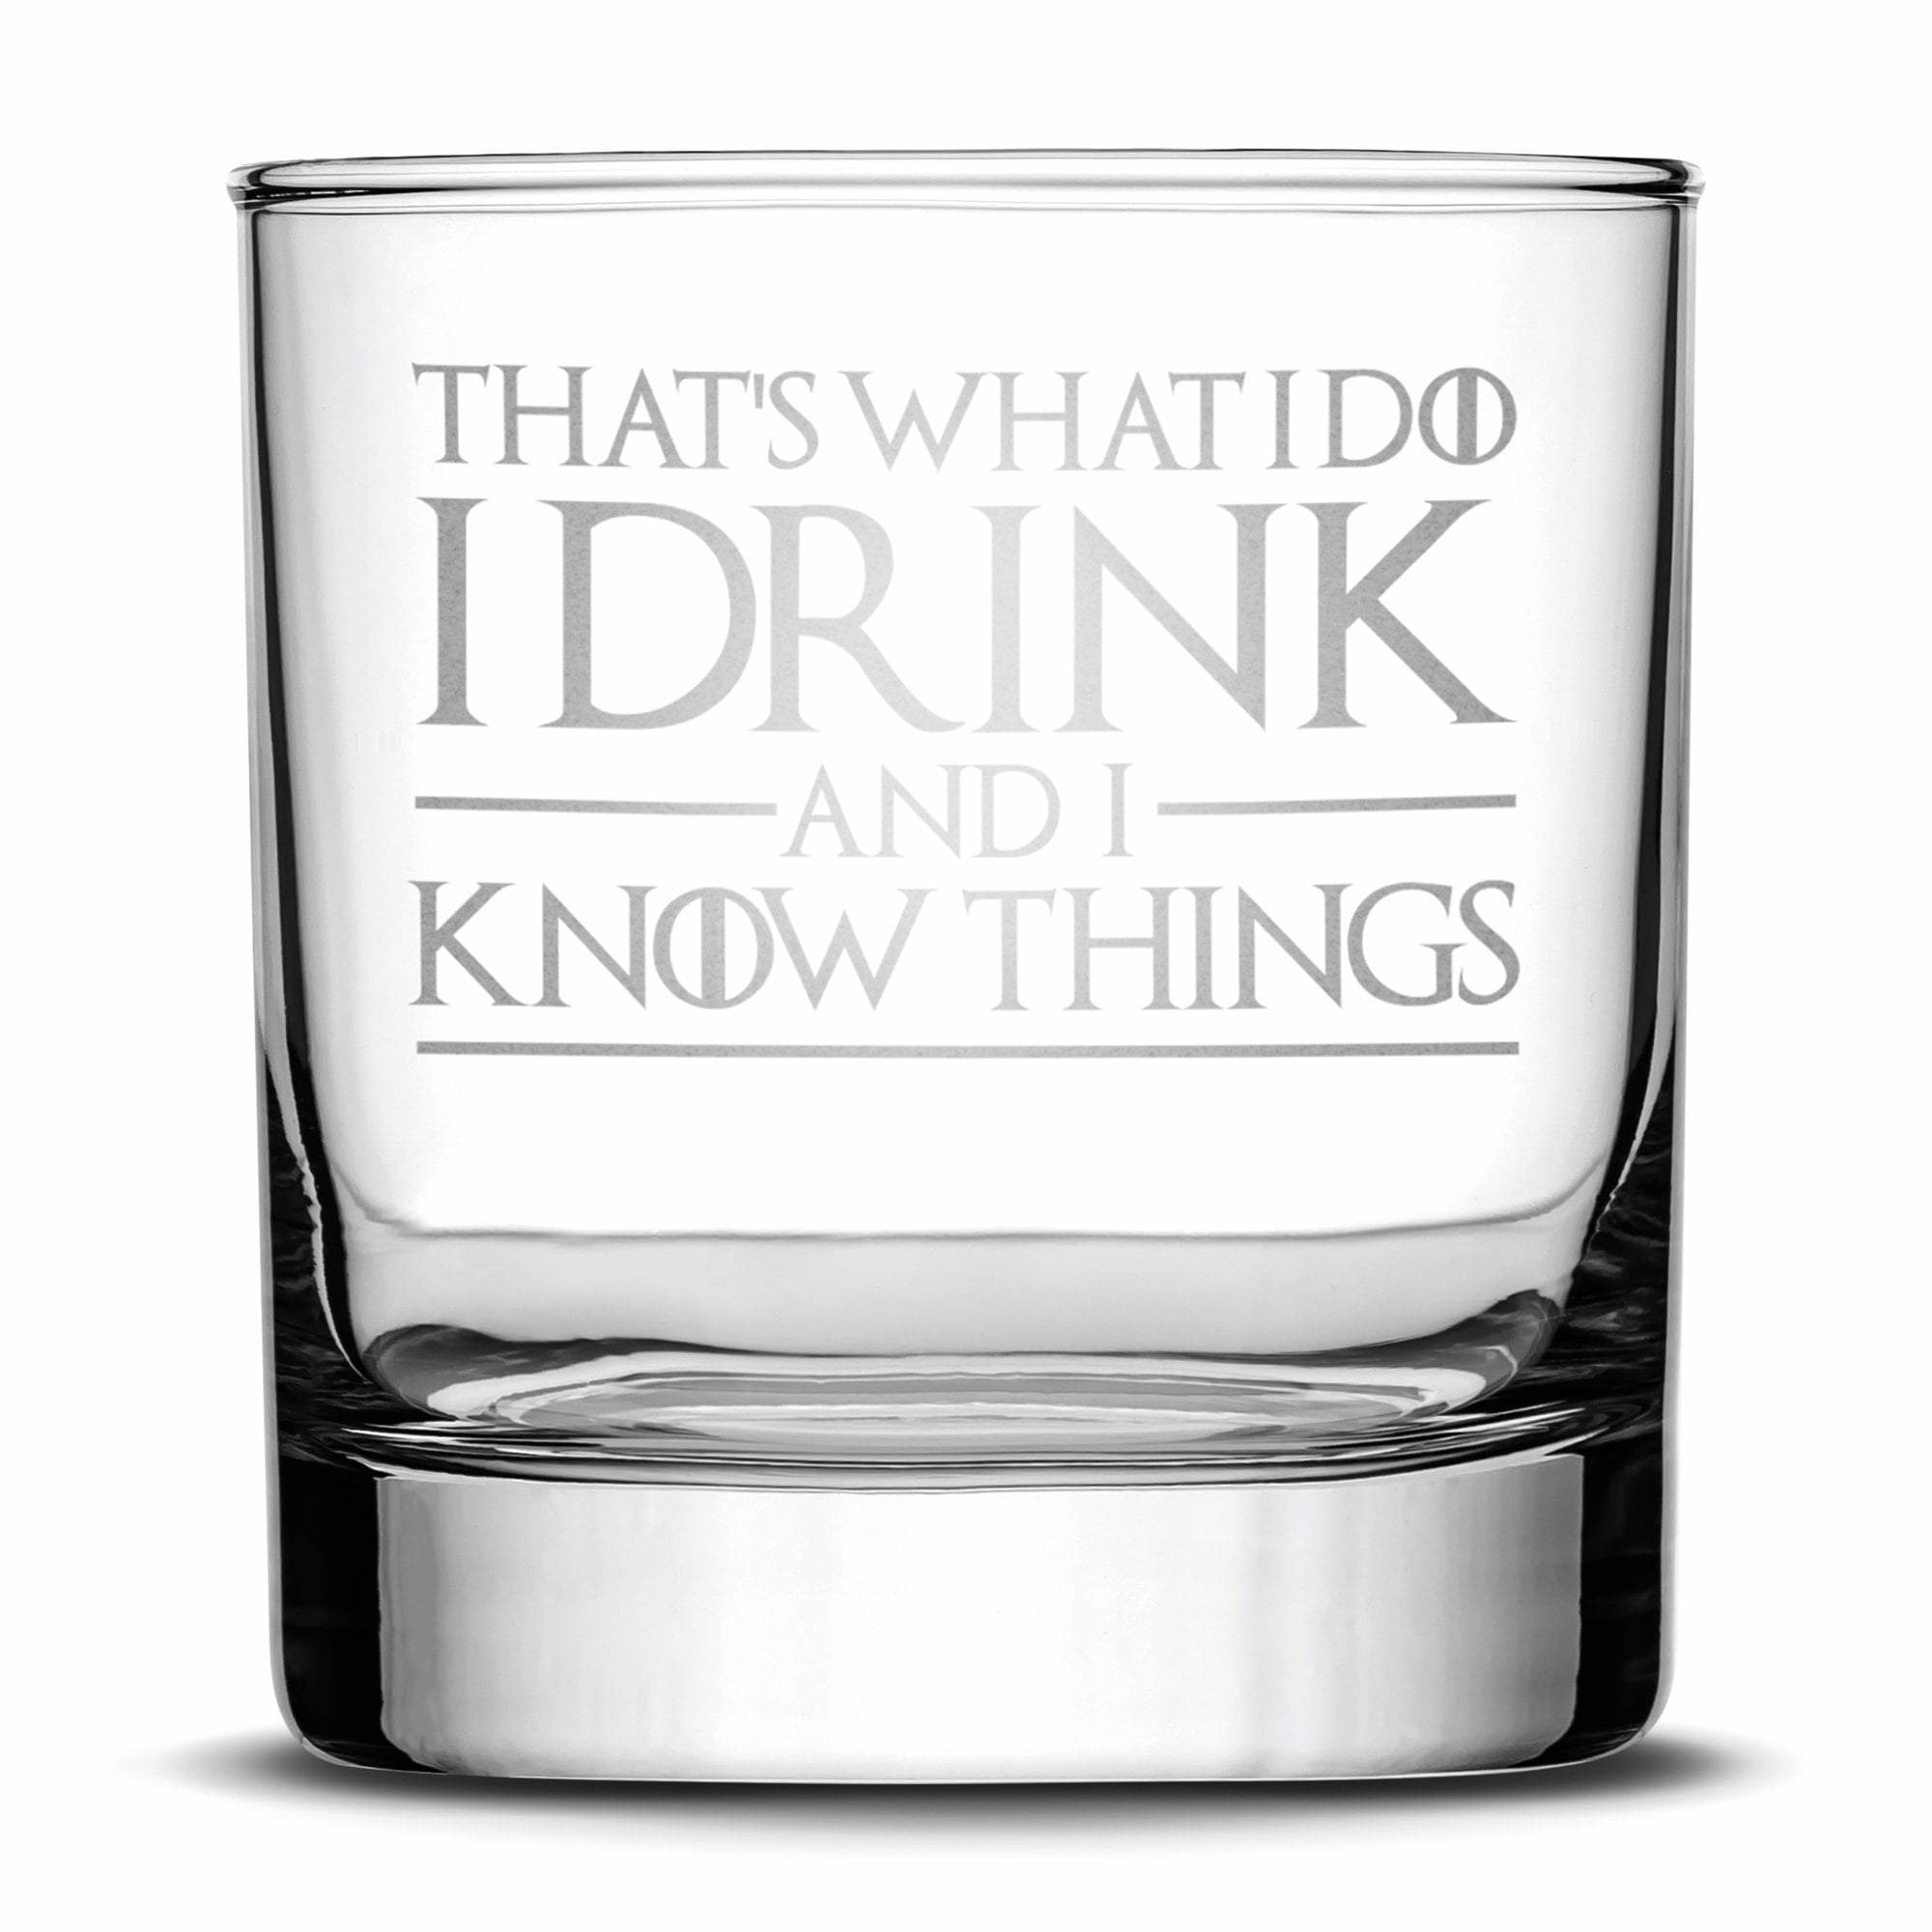 Image of Premium Whiskey Glass, Game of Thrones, I Drink and I Know Things, 10oz